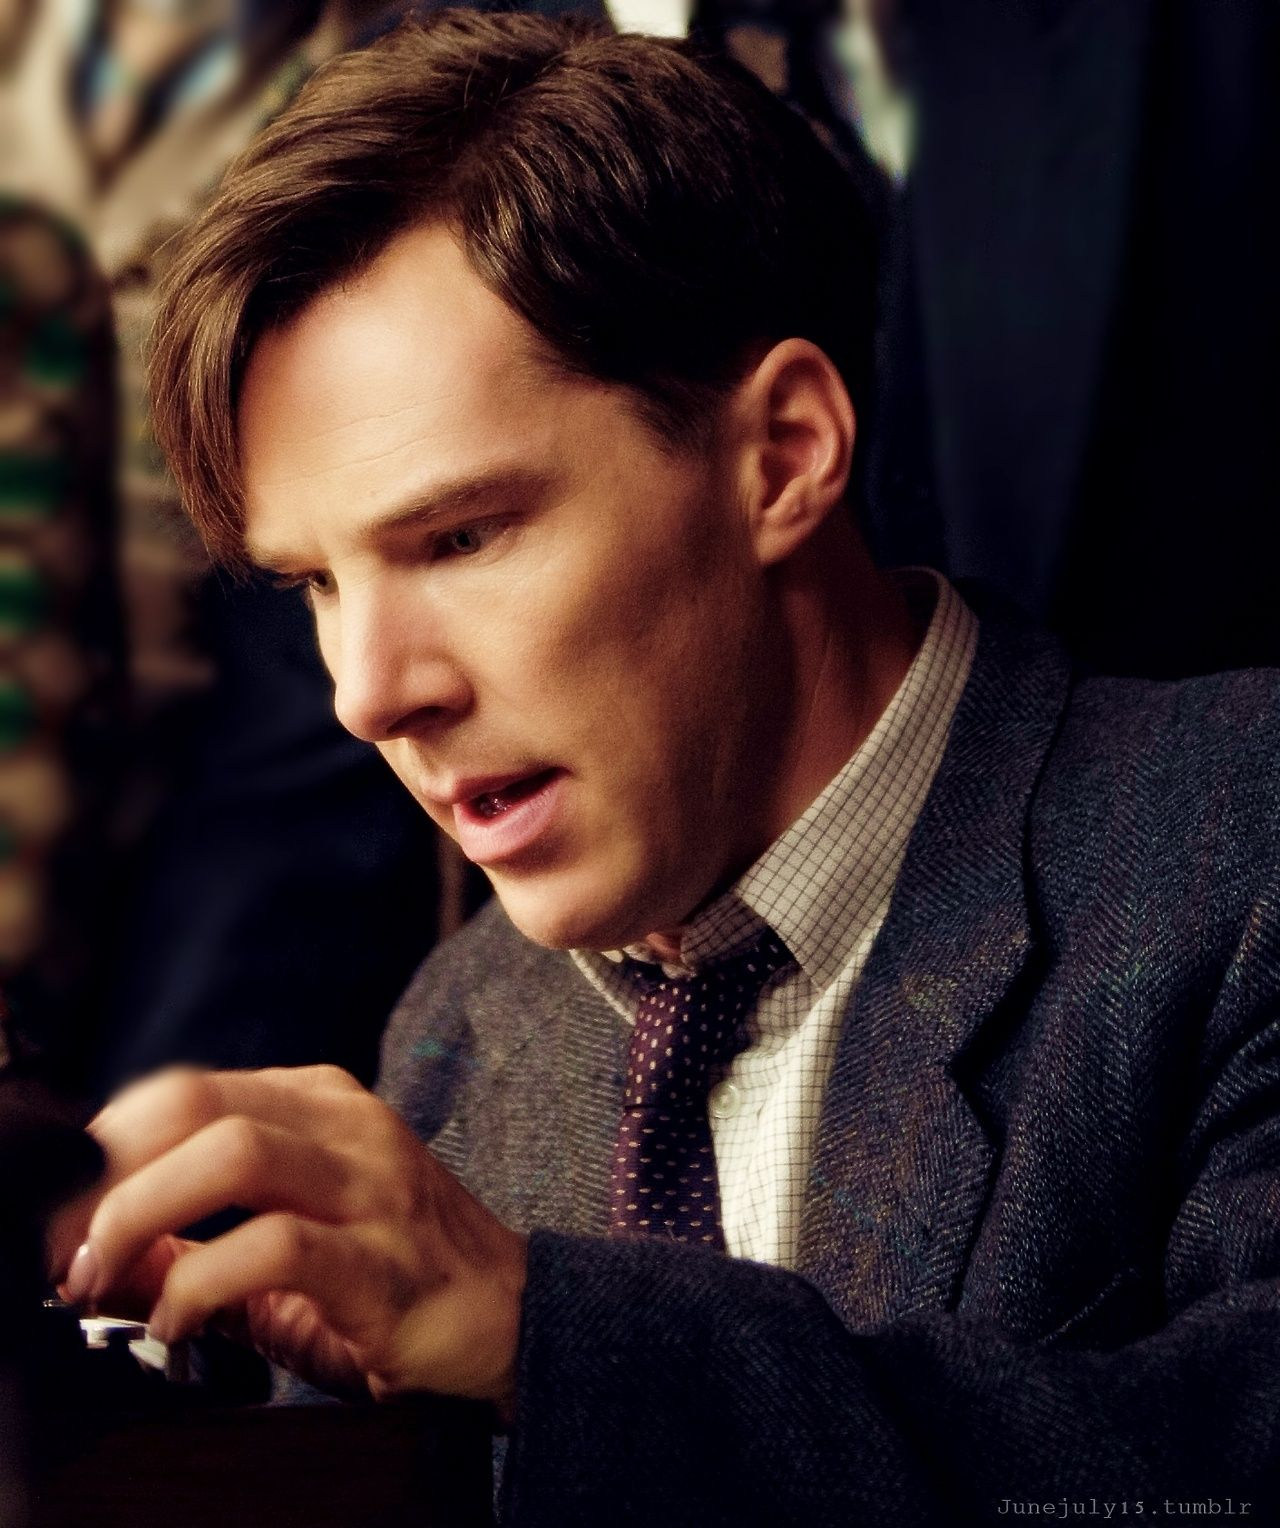 Alan Turing Libro Benedict Cumberbatch As Alan Turing In The Upcoming Movie